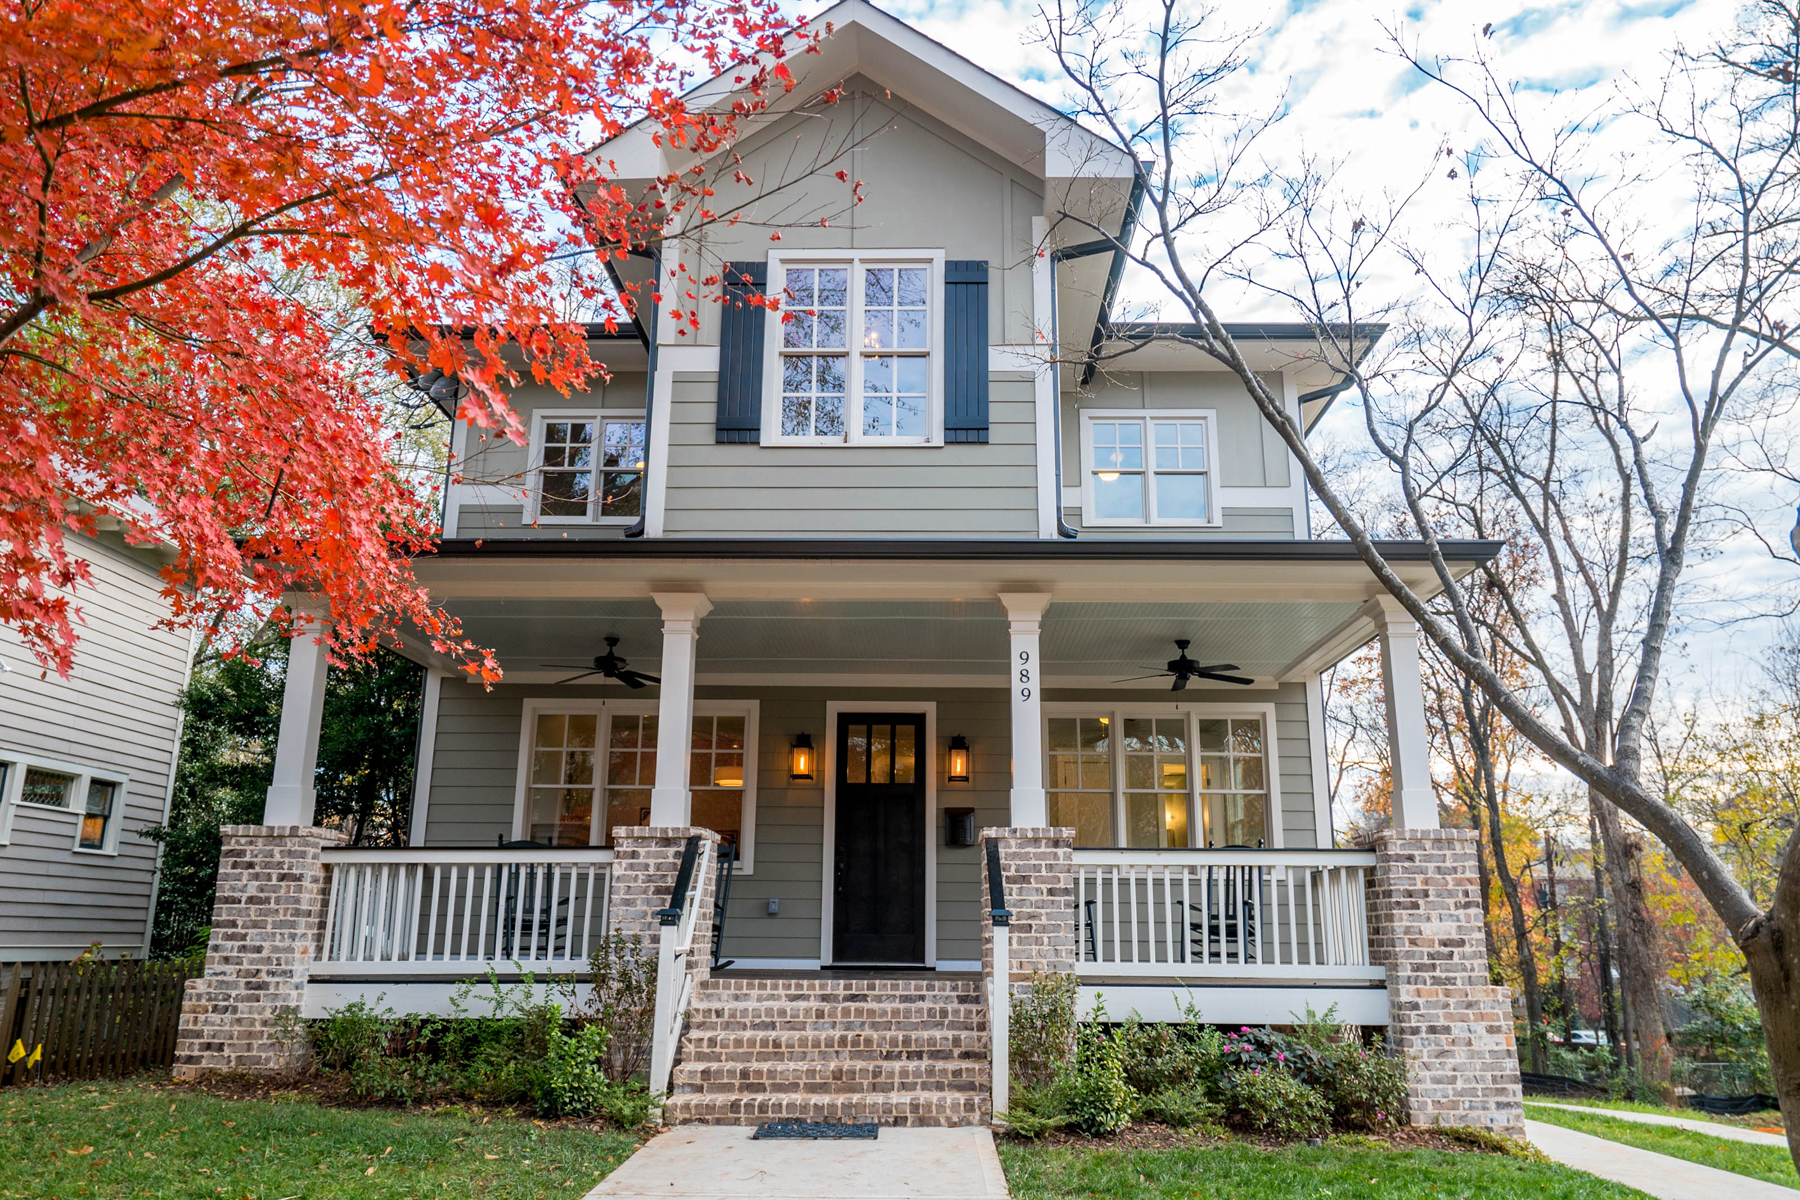 Single Family Home for Sale at Fabulous New Construction Blocks From Virginia Highland Village 989 Drewry Street NE Virginia Highland, Atlanta, Georgia, 30306 United States